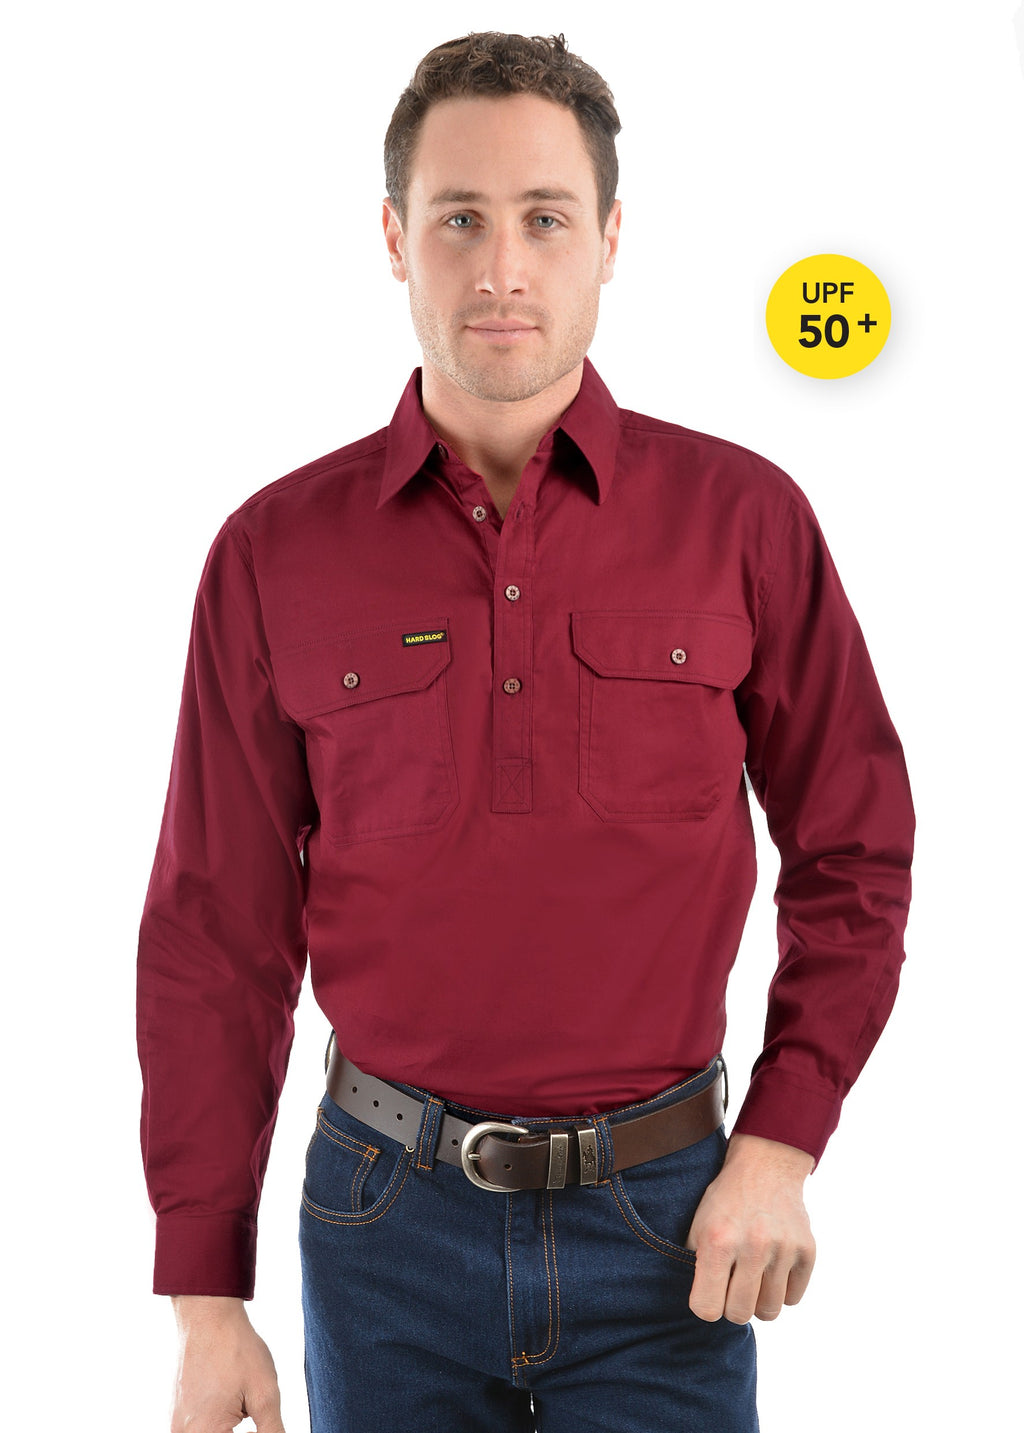 Mens Half Placket Light Cotton Shirt Burgundy